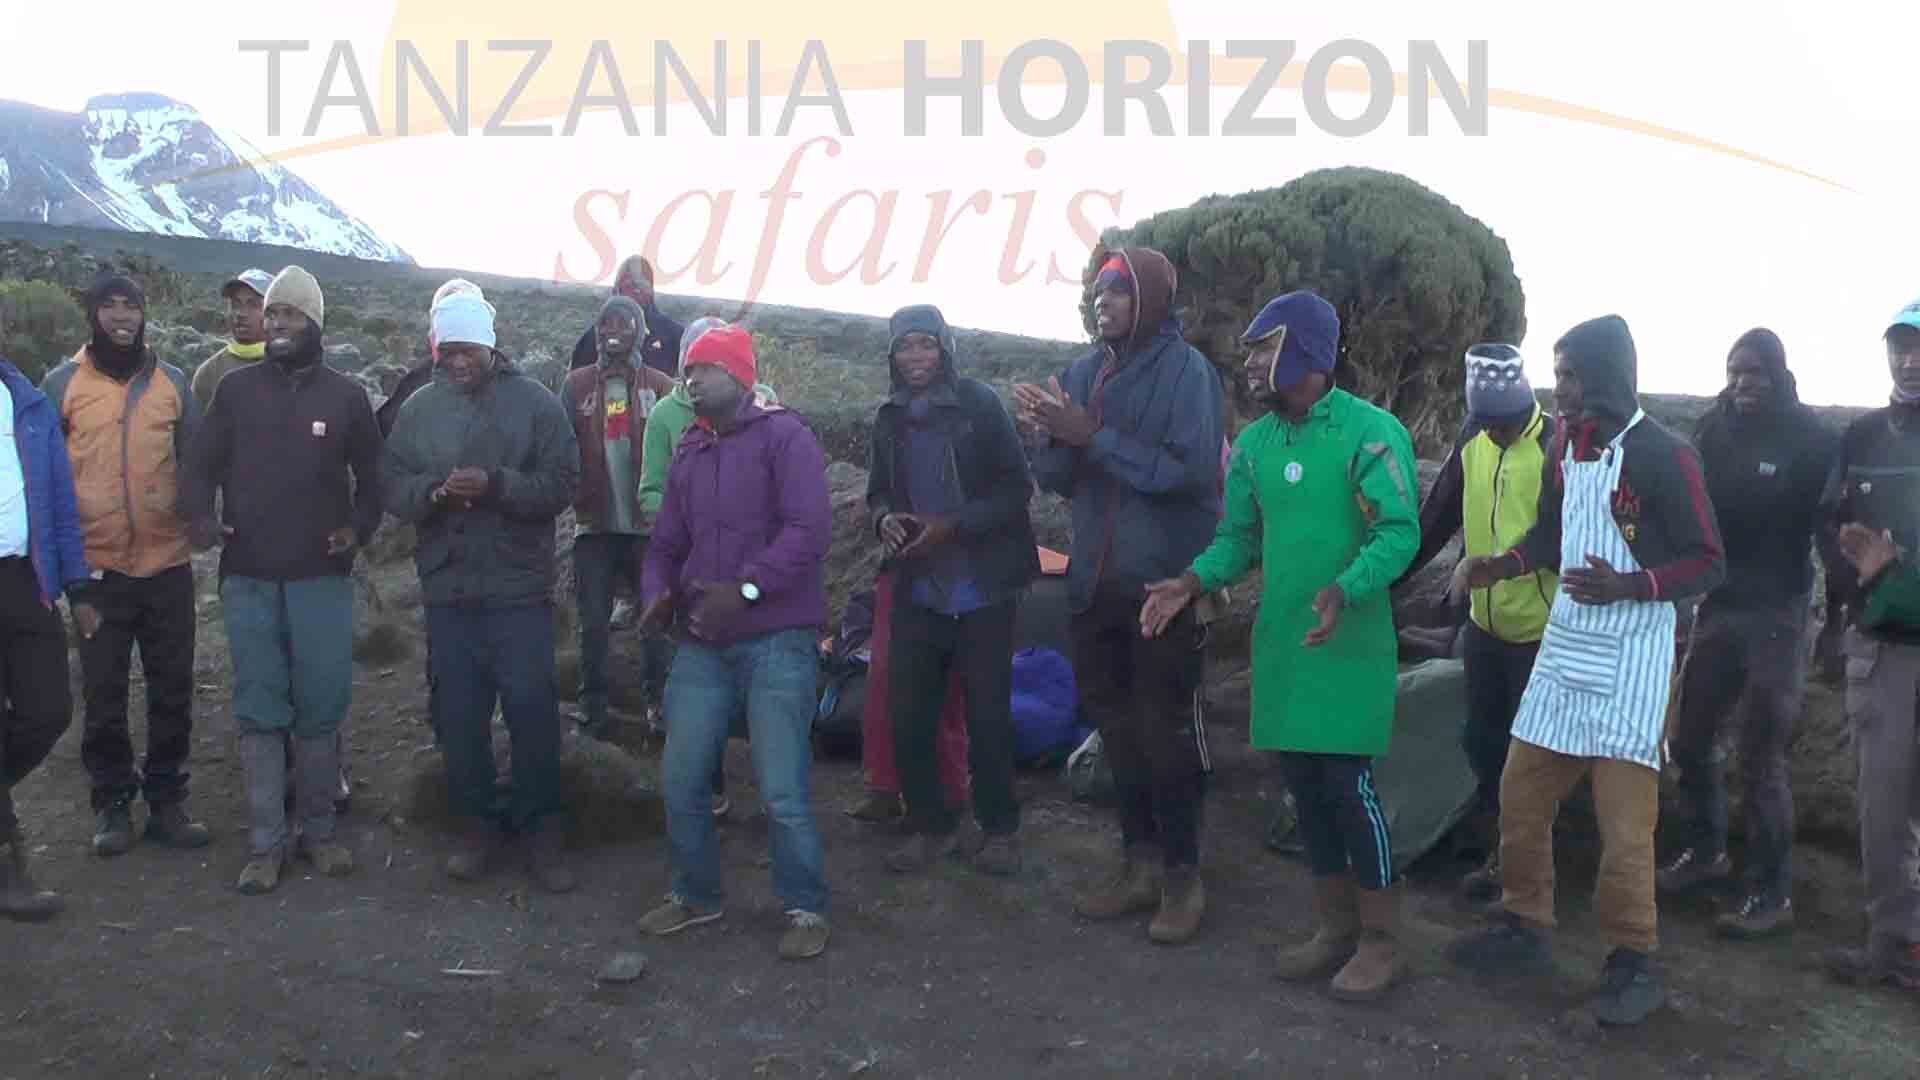 It IS COMMON TO TIP YOUR CREW AFTER CLIMBING KILIMANJARO